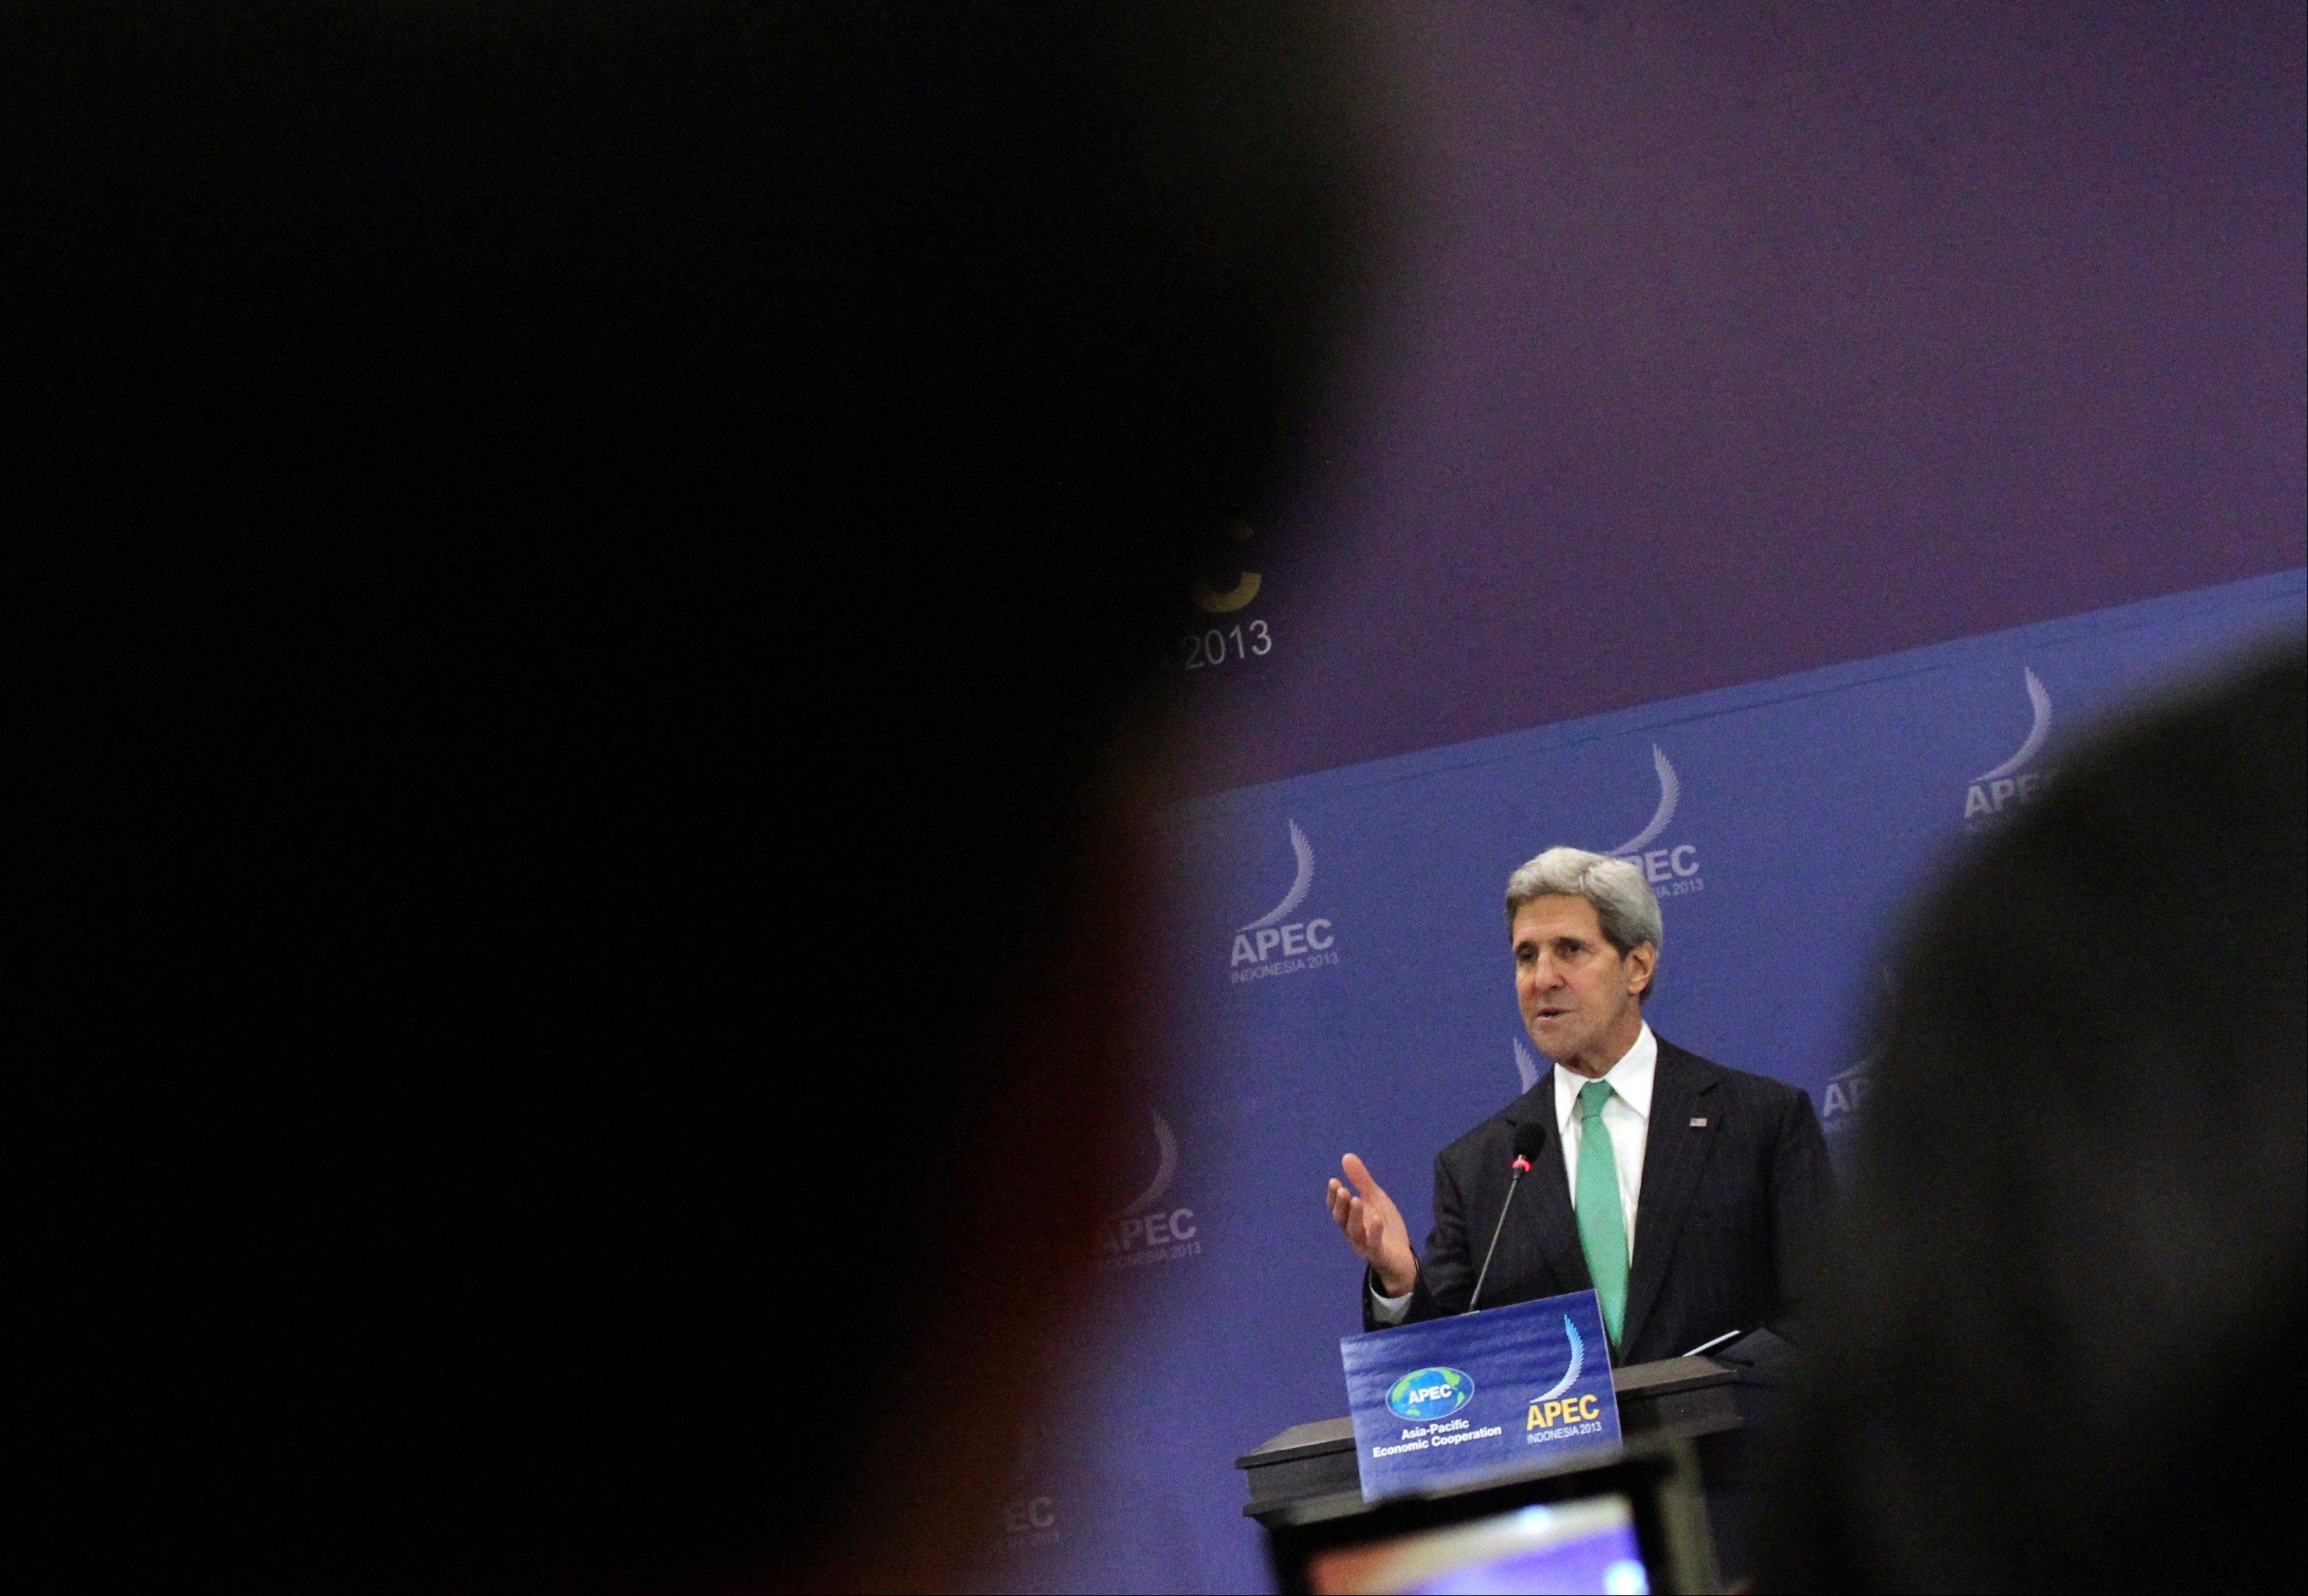 U.S. Secretary of State John Kerry speaks during a press conference at the Asia-Pacific Economic Cooperation ministerial meeting in Bali, Indonesia, Saturday, Oct. 5. Kerry said talks on a trans-Pacific trade pact are forging ahead despite U.S. President Barack Obama's absence due to the government shutdown.